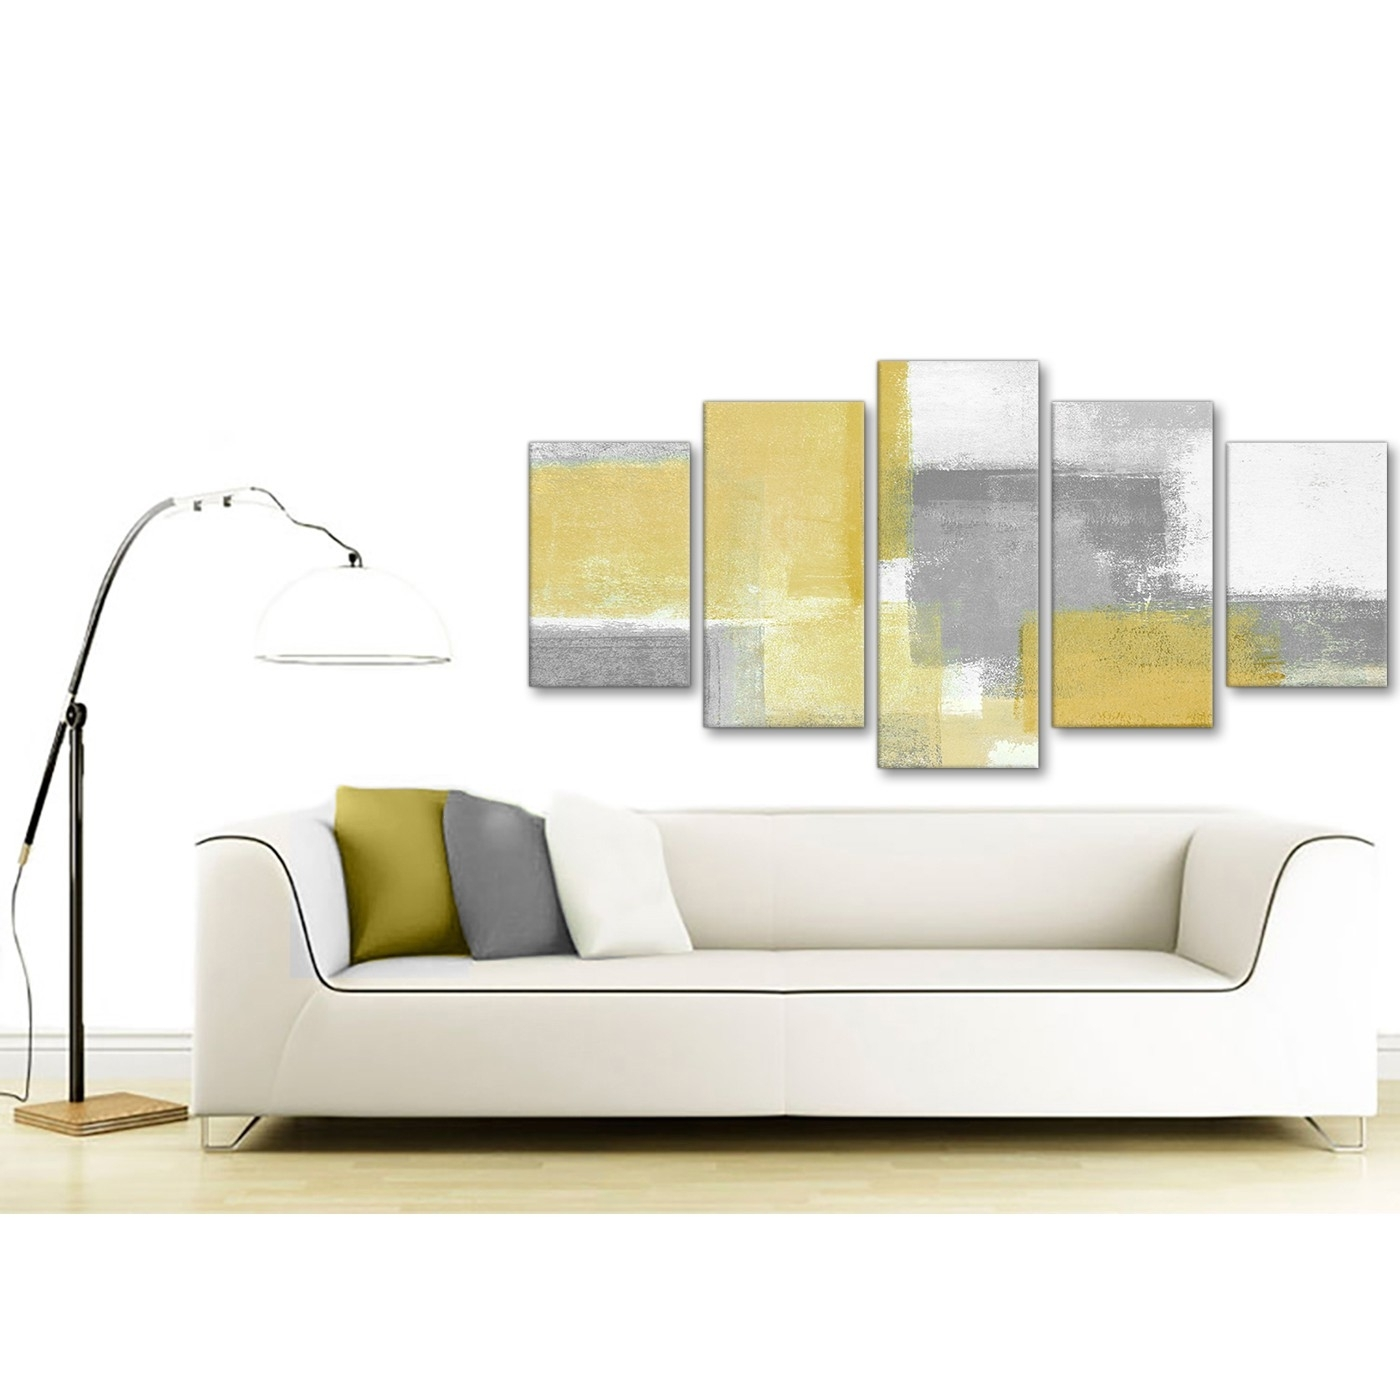 5 Piece Mustard Yellow Grey Abstract Living Room Canvas Wall Art For Newest Grey Abstract Canvas Wall Art (View 17 of 20)